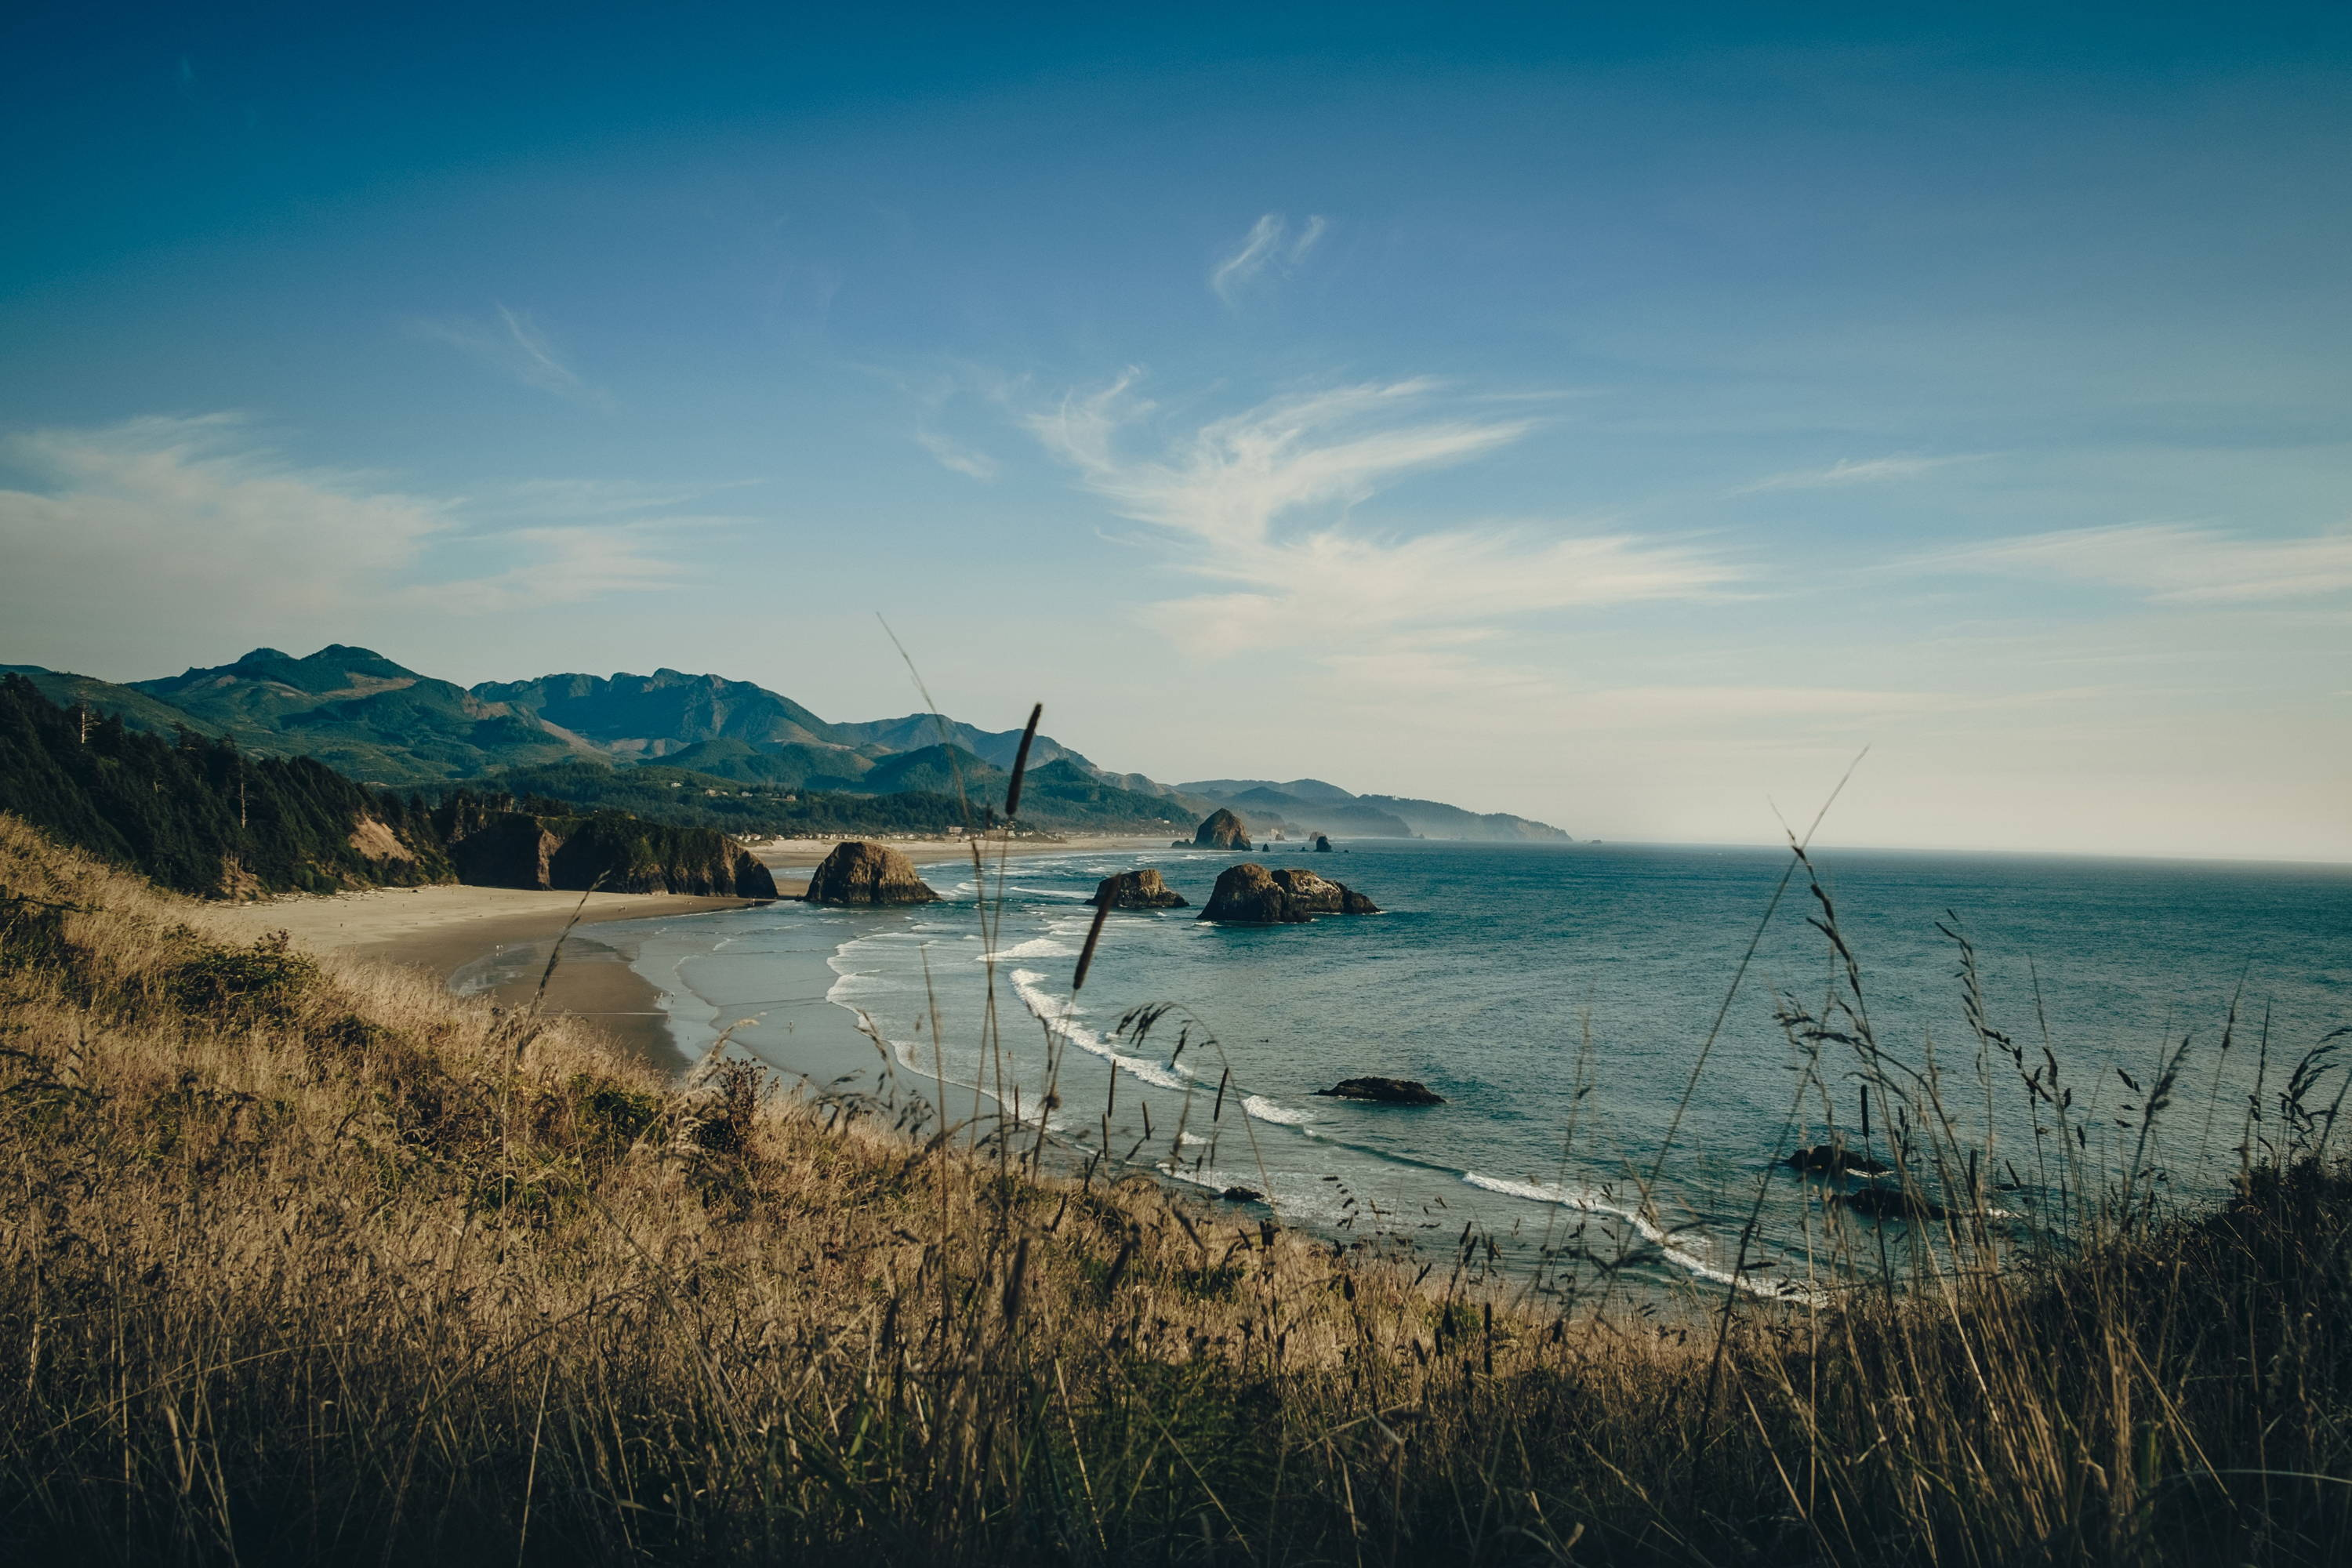 Waves crash gently against the beach with tall grass in the foreground at Ecola State Park.